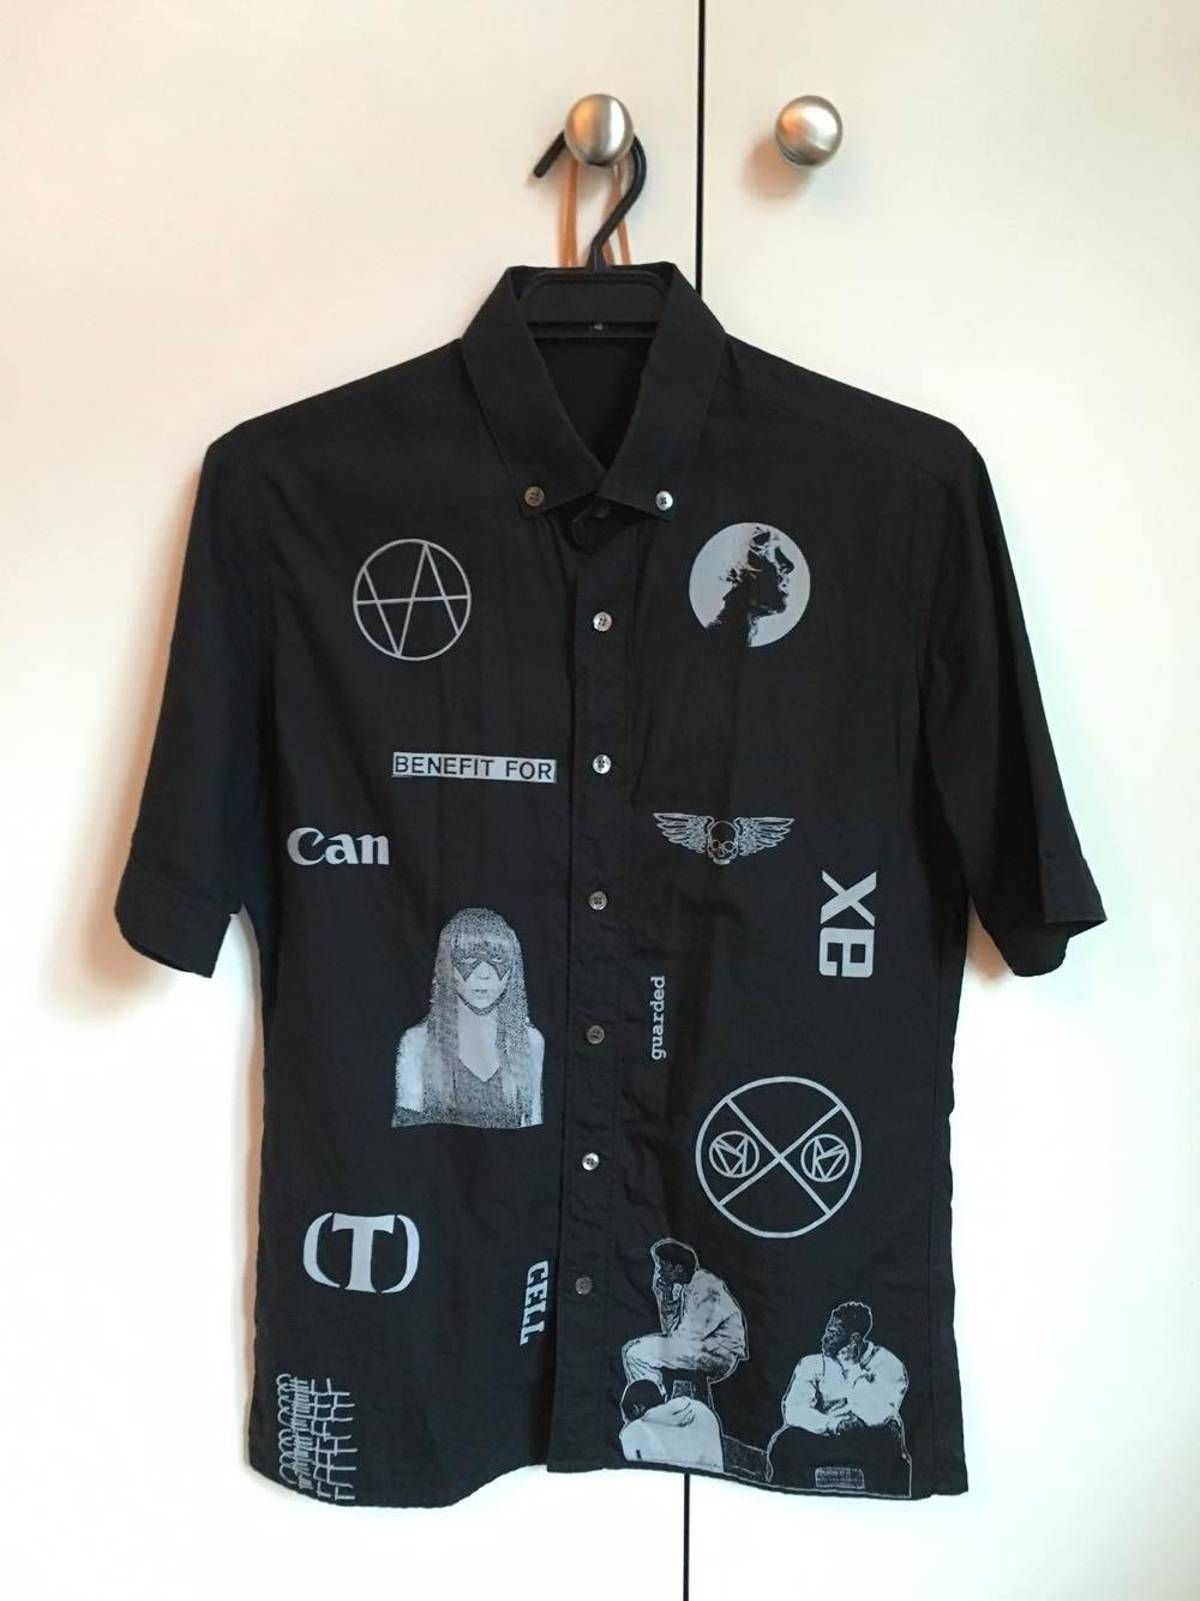 76f82706941a Buy Raf Simons Consumed shirt, Size: M, Description: Raf Simons SS2003  Consumed short sleeve button up shirt. Very rare sought after archival  piece.